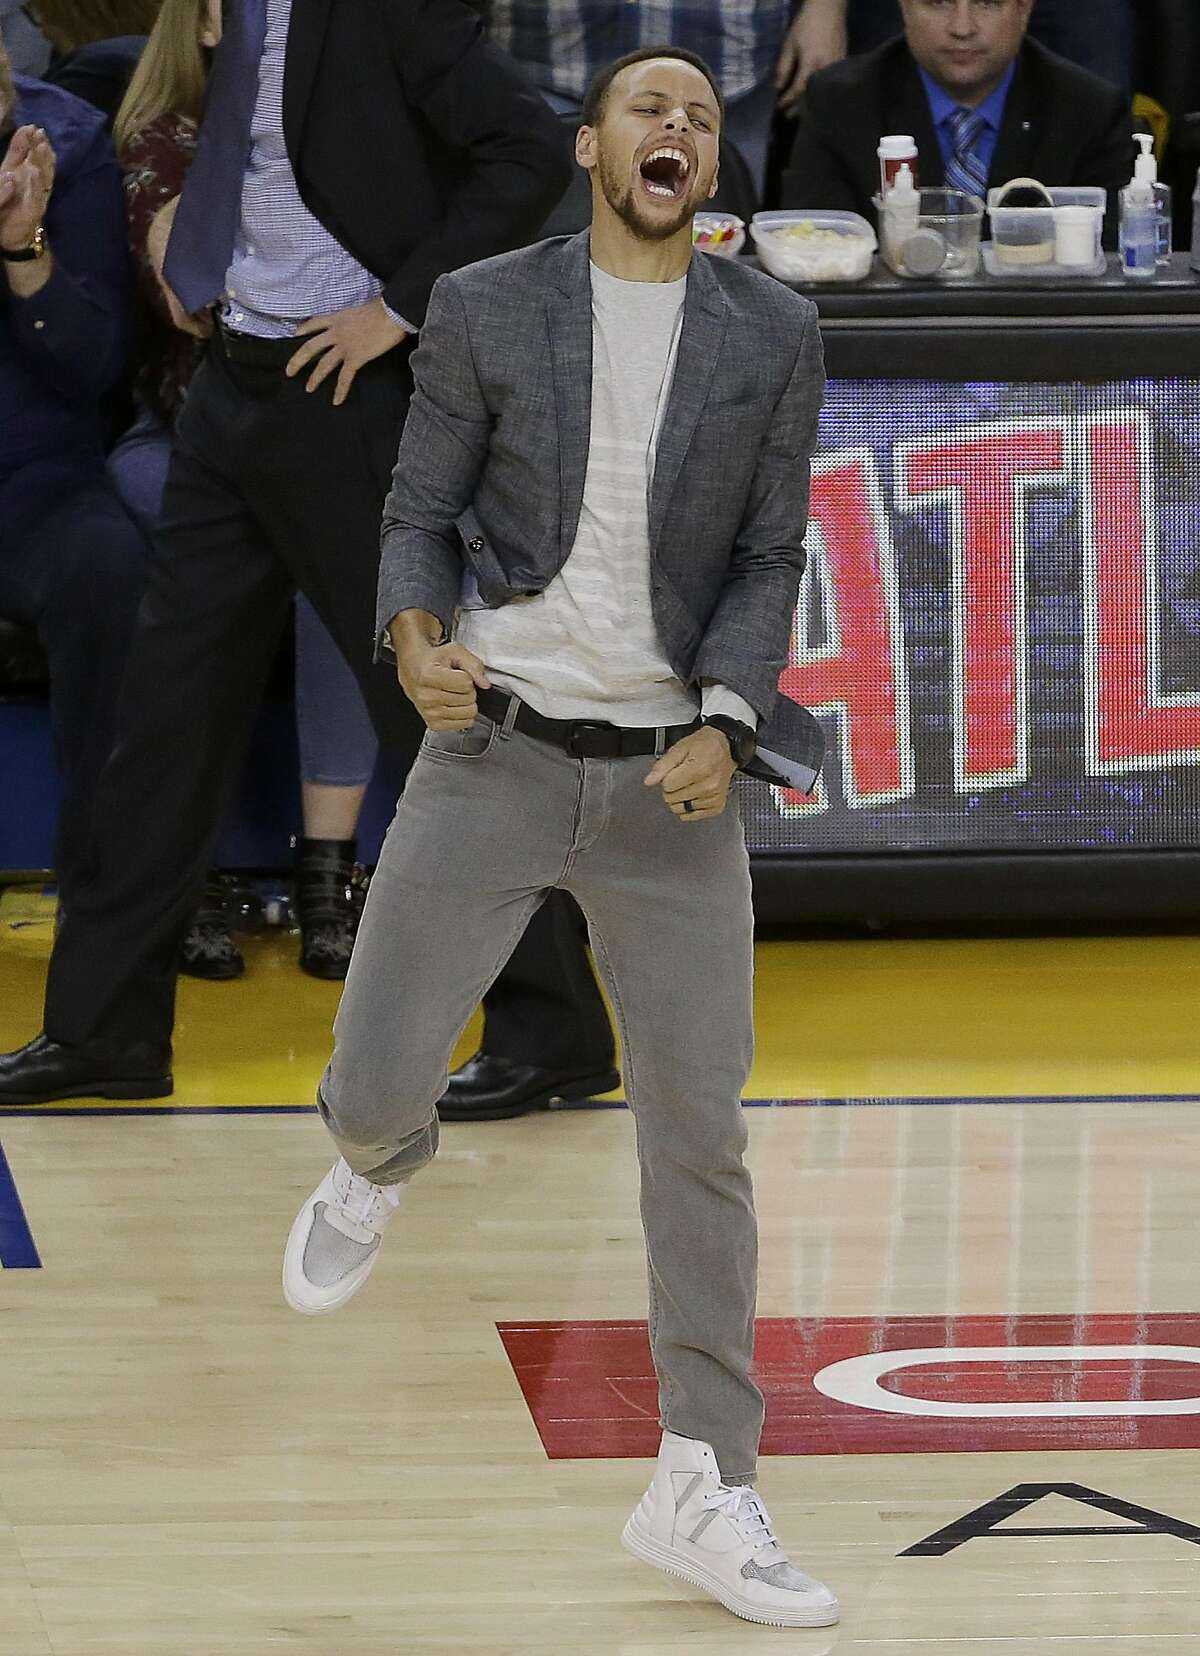 Golden State Warriors guard Stephen Curry celebrates during the second half in Game 2 of a second-round NBA basketball playoff series against the Portland Trail Blazers in Oakland, Calif., Tuesday, May 3, 2016. The Warriors won 110-99.